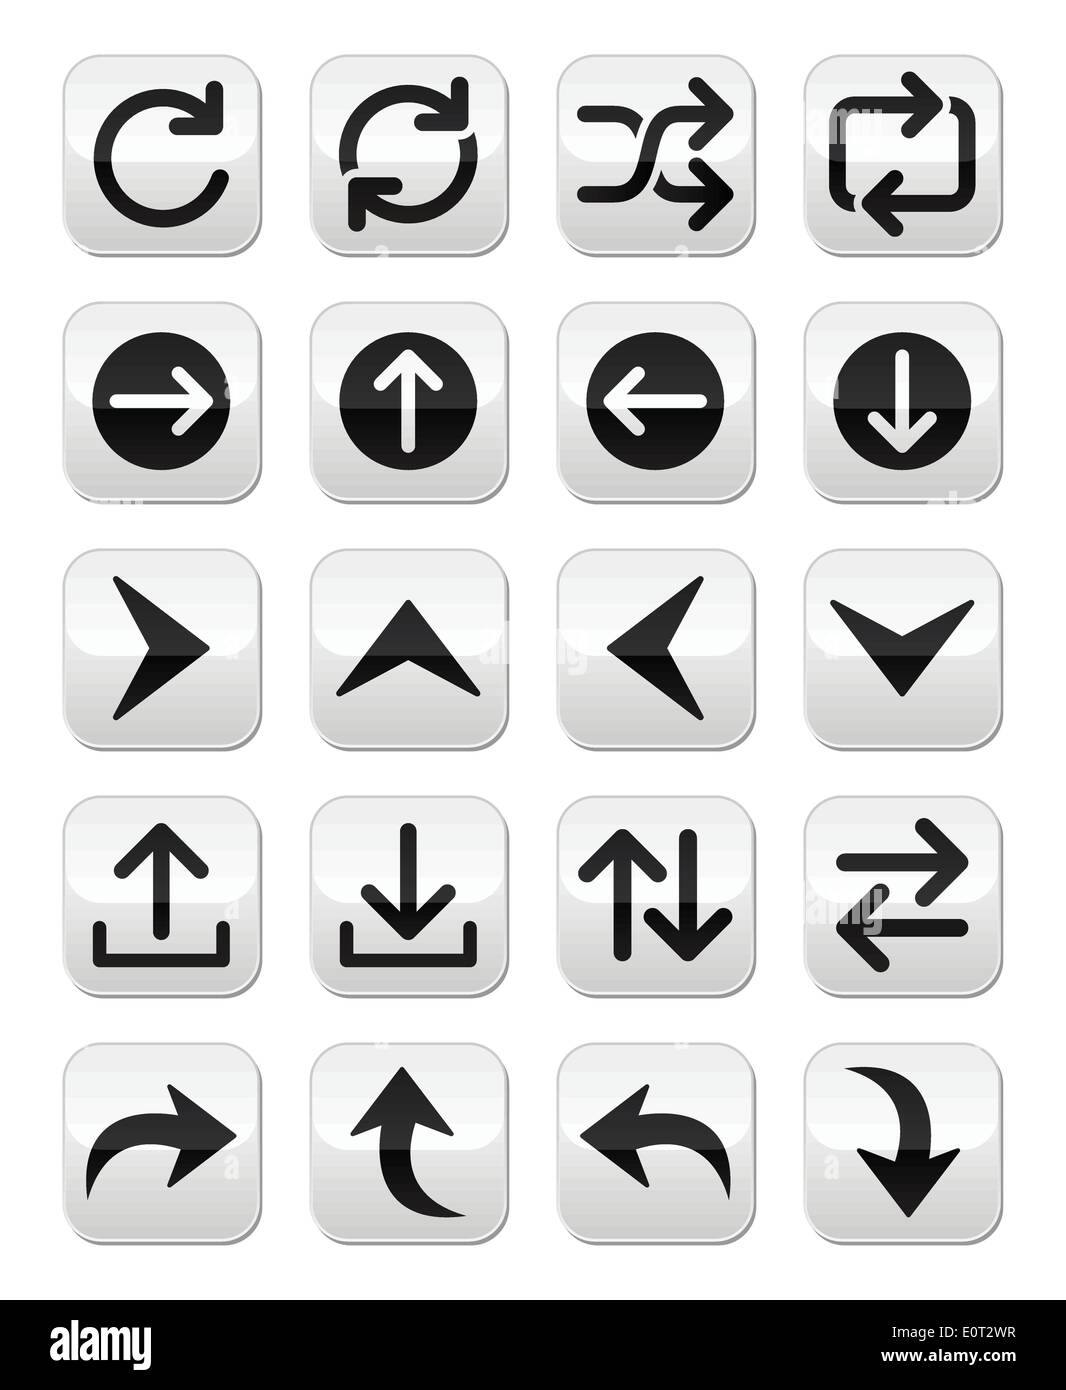 Arrow vector button sets isolated on white - Stock Image